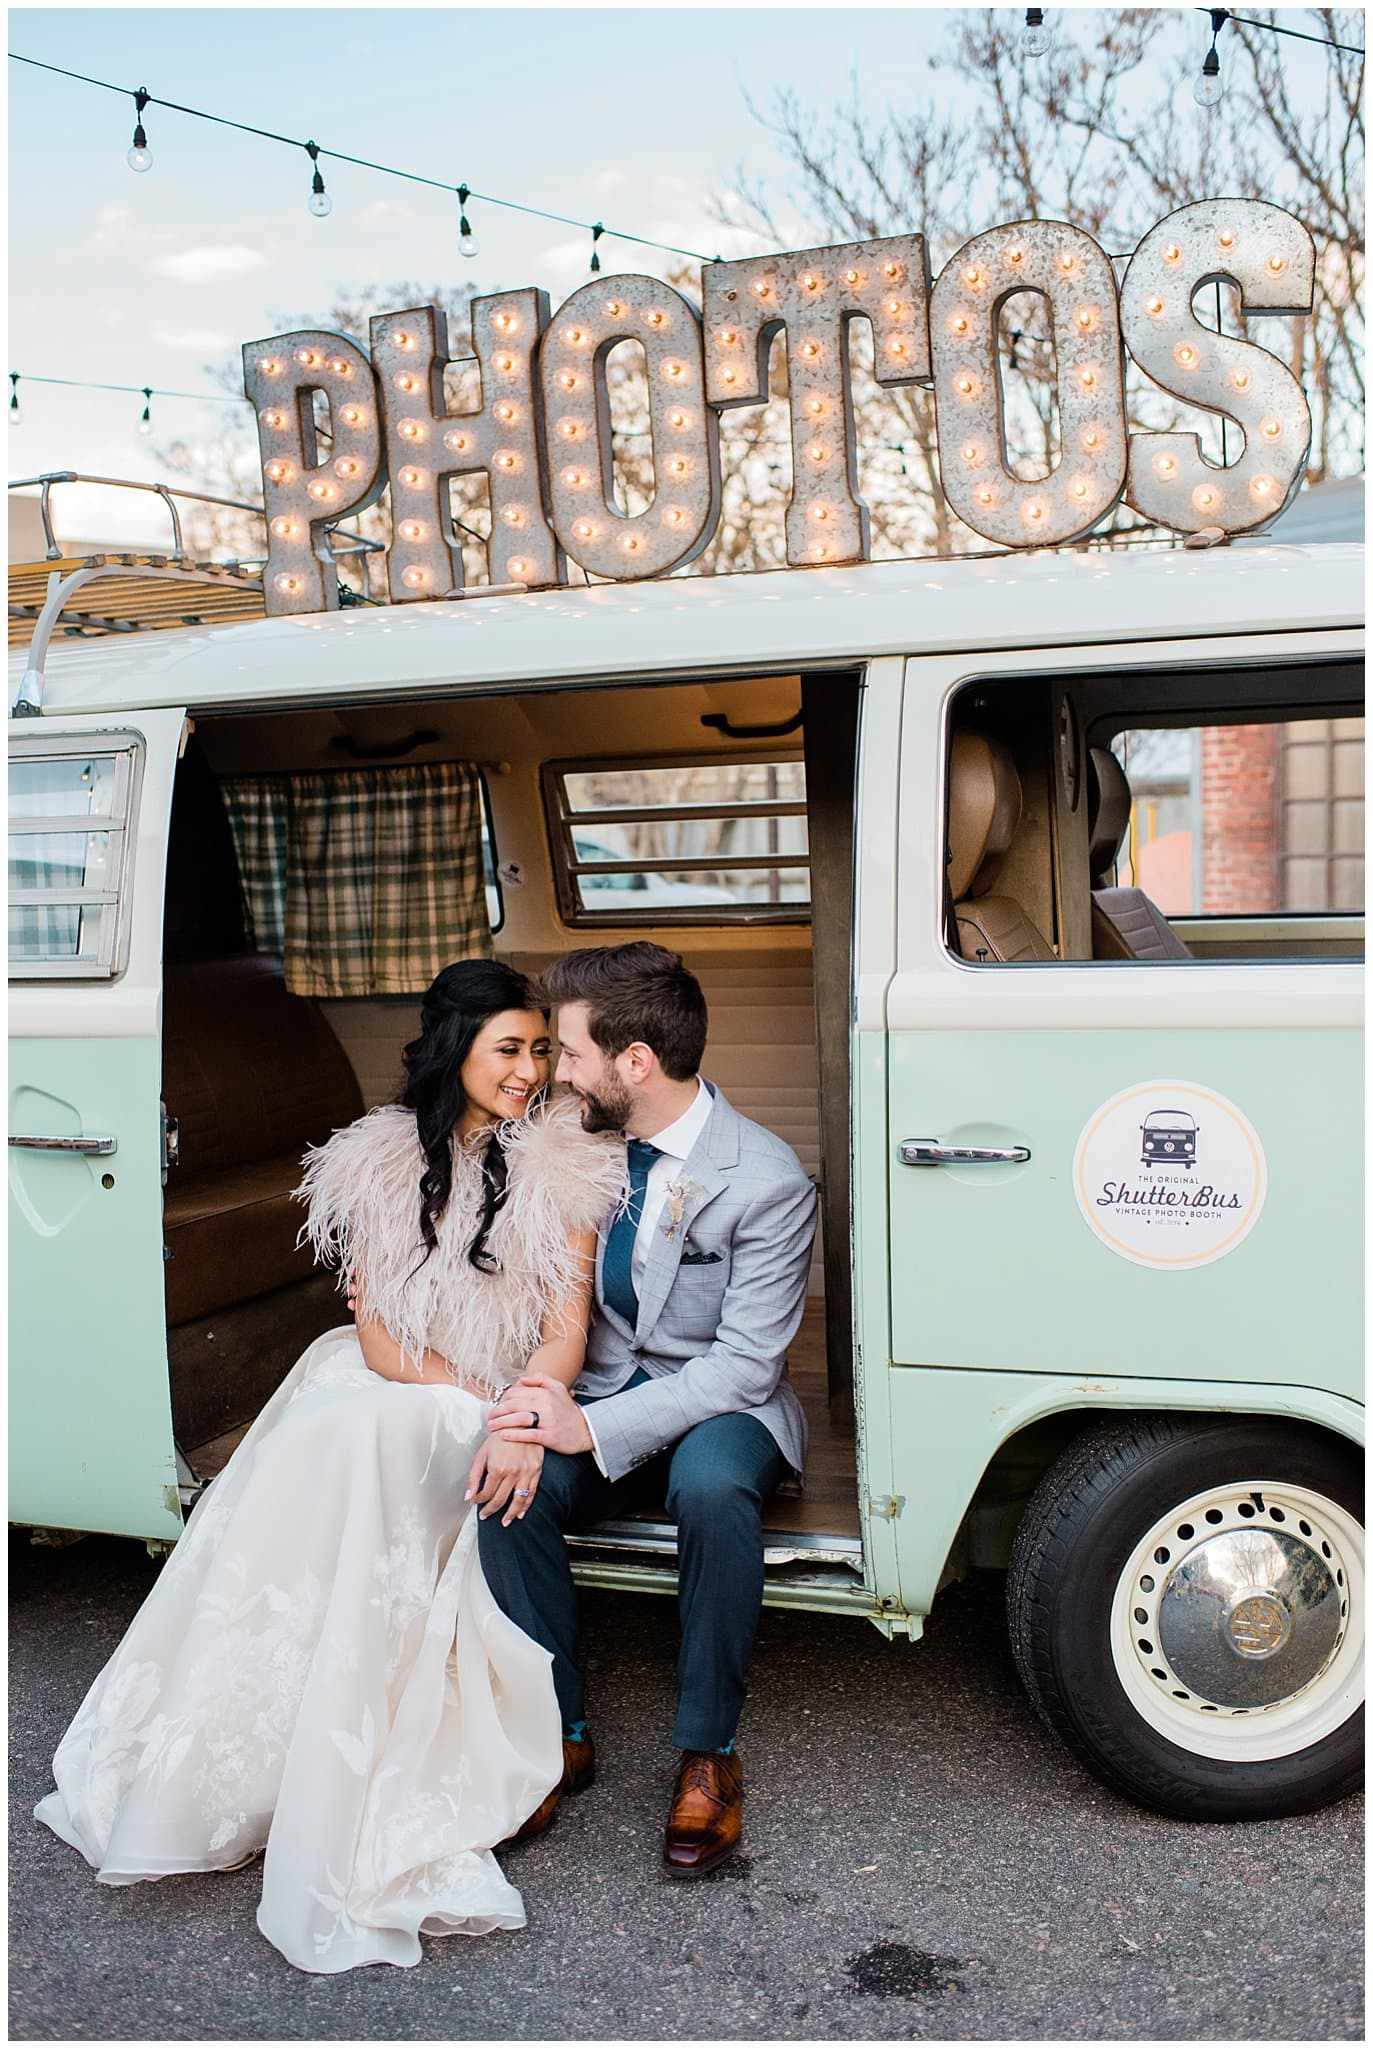 bride and groom in shutter bus photo booth at Blanc wedding by Denver Wedding Photographer Jennie Crate